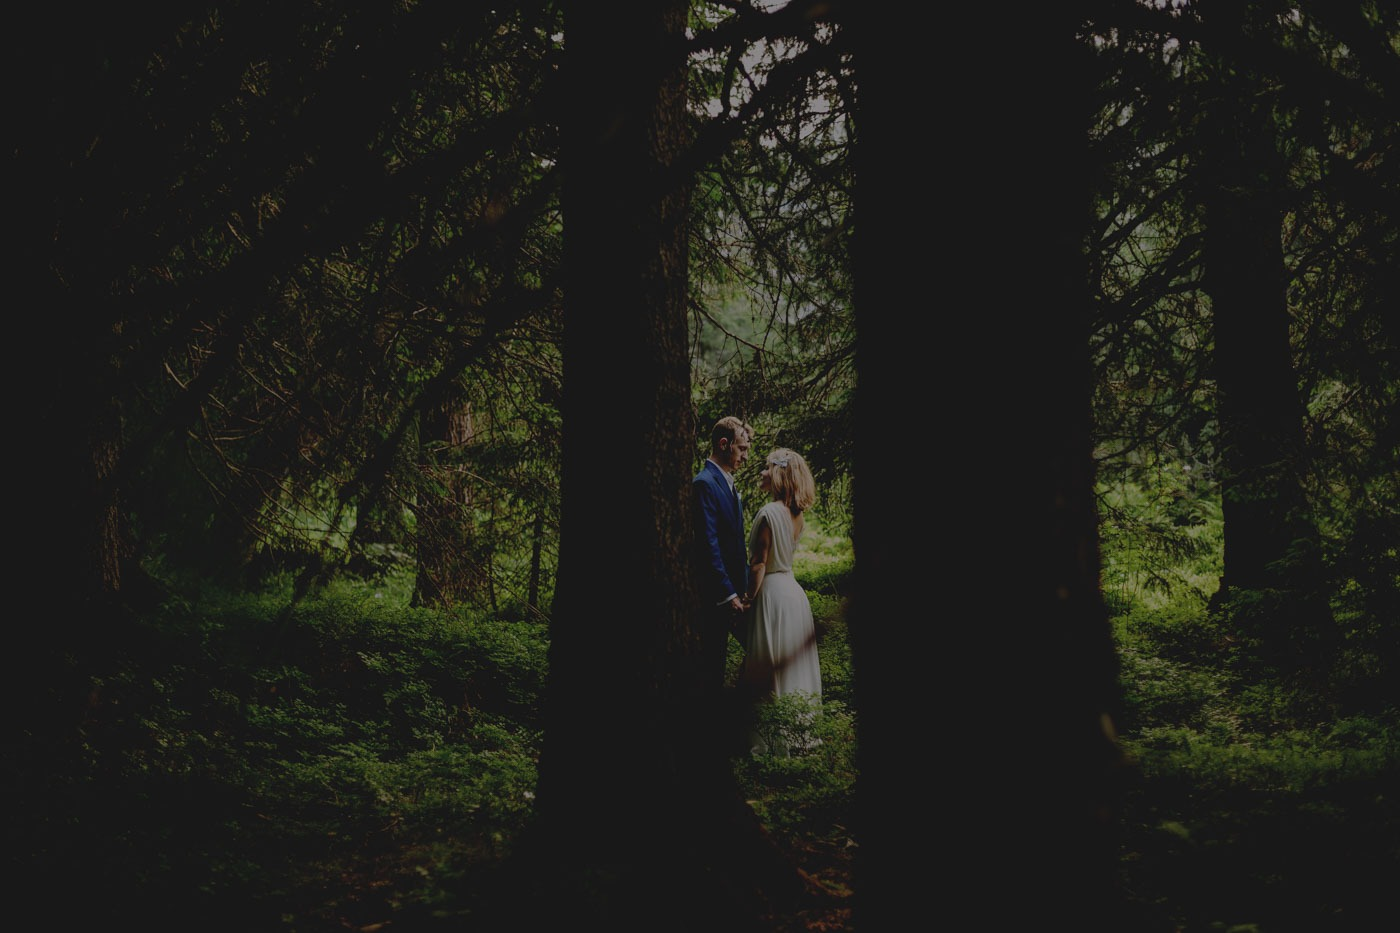 tatra mountains wedding photographer